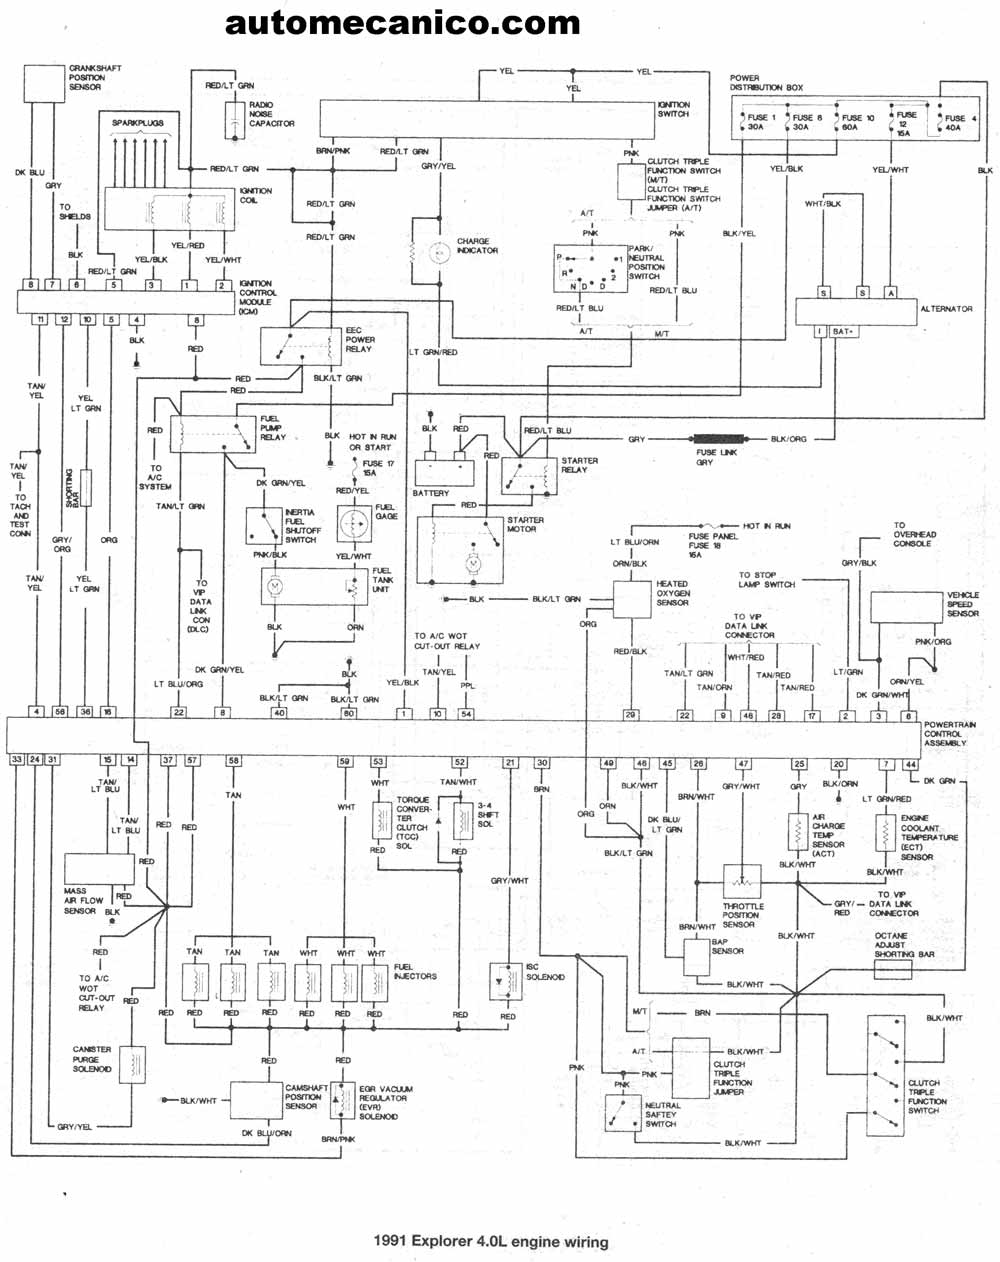 diagrama fusibles ford explorer 96